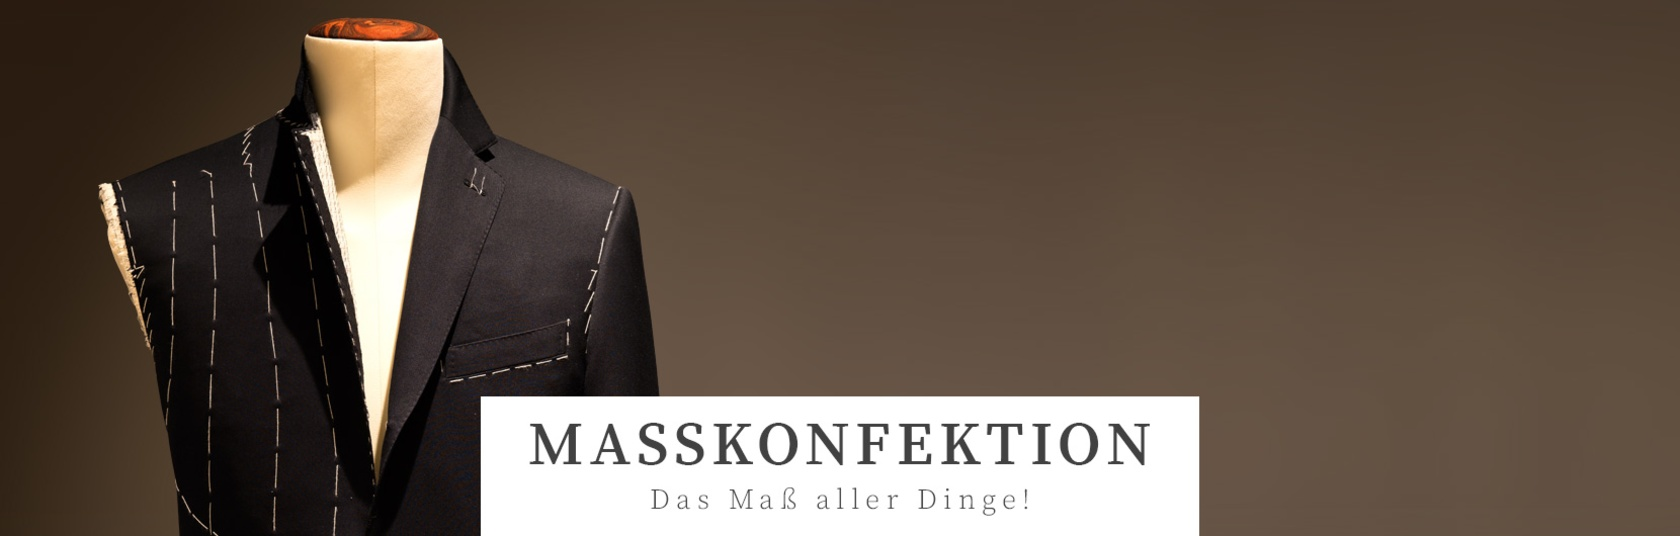 Masskonfektion